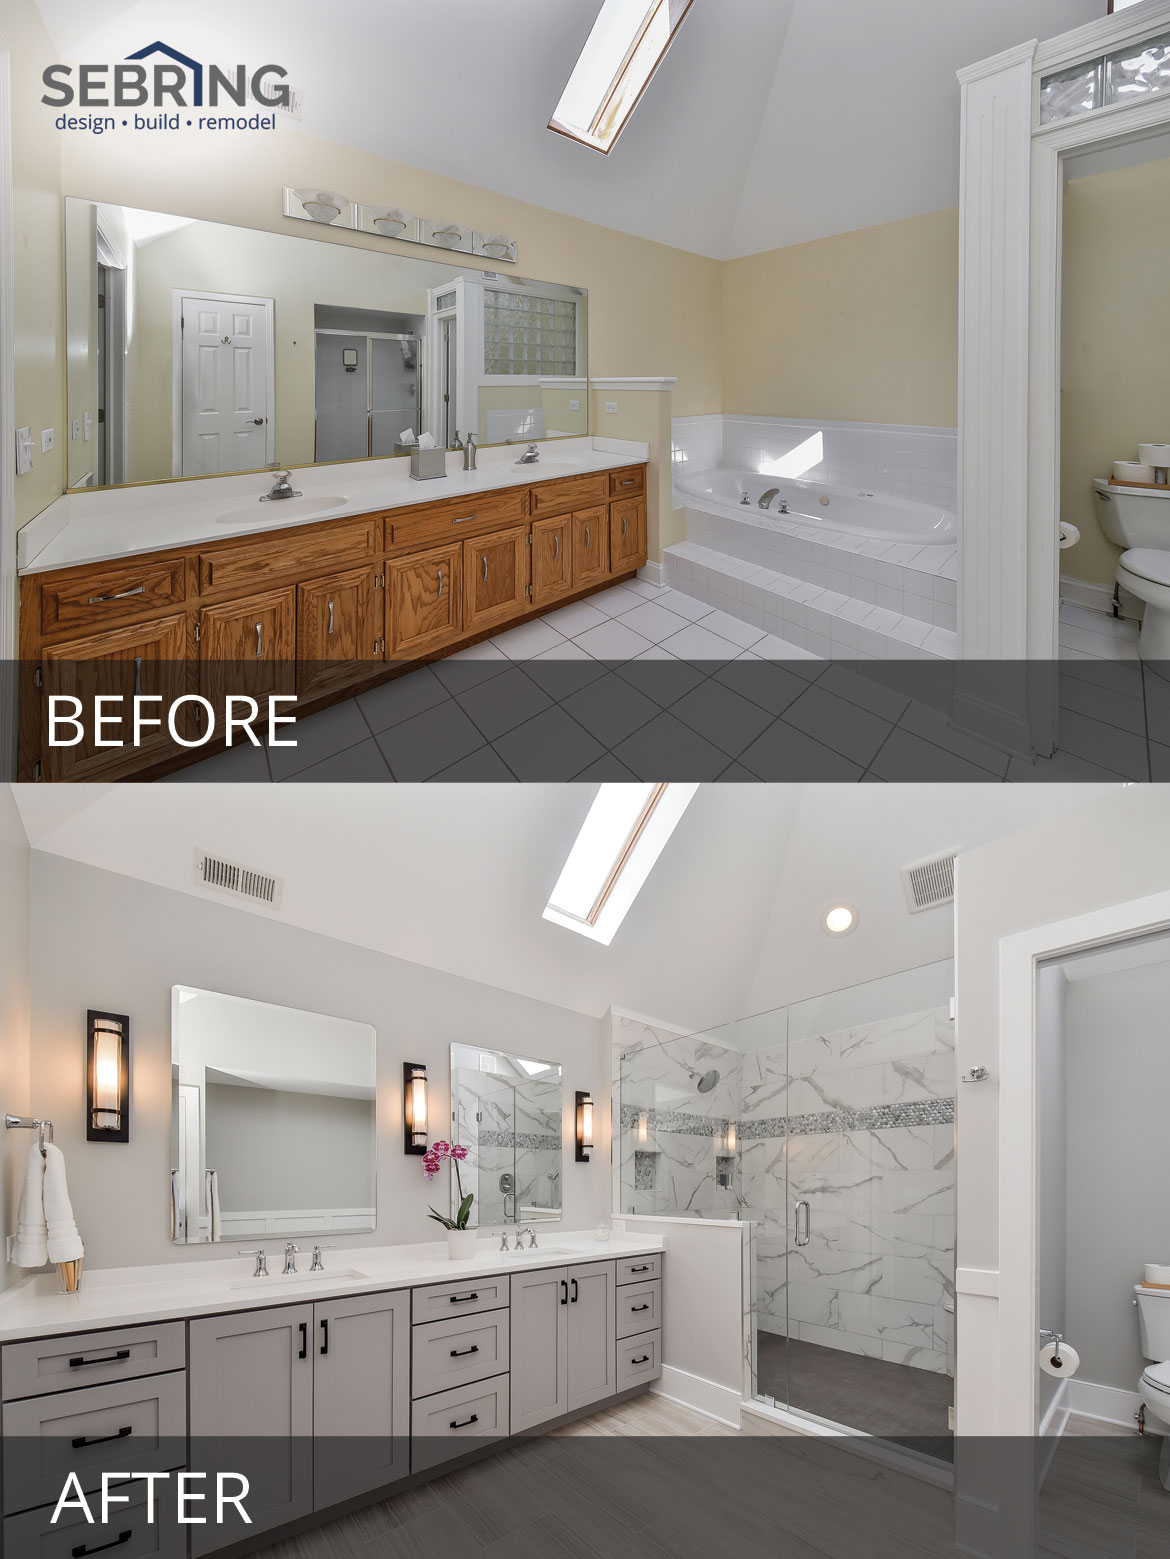 Sarah & Ray's Master Bathroom Before & After Pictures